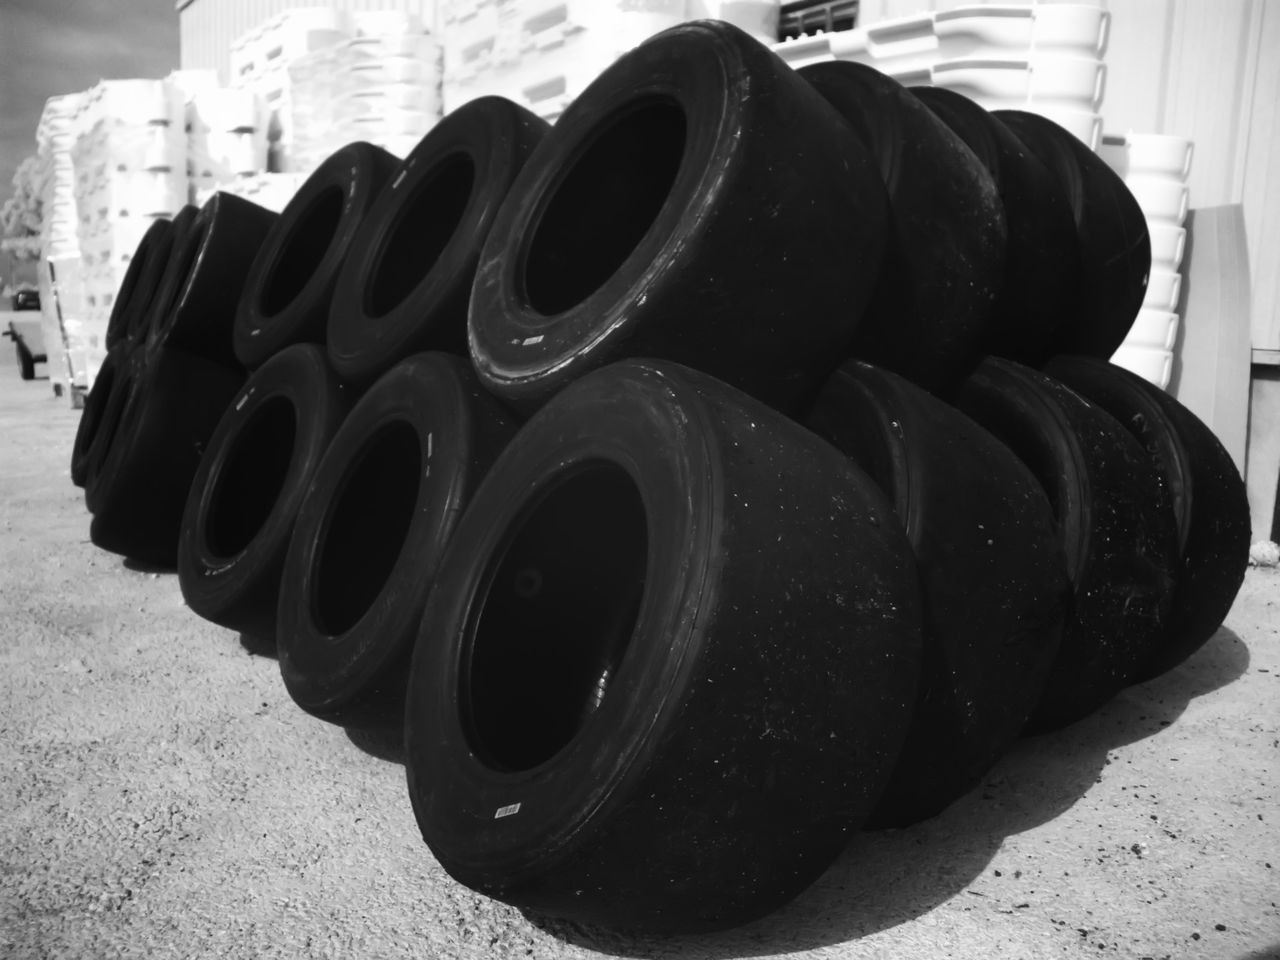 Black Color Car Wheels Chemical Products Close-up Contamination Day Focus On Foreground Machine Part Metallic No People Old Outdoors Protect The Environment Protect The Environment Recycling Warehouse Worn Car Tires Recycling ındustry